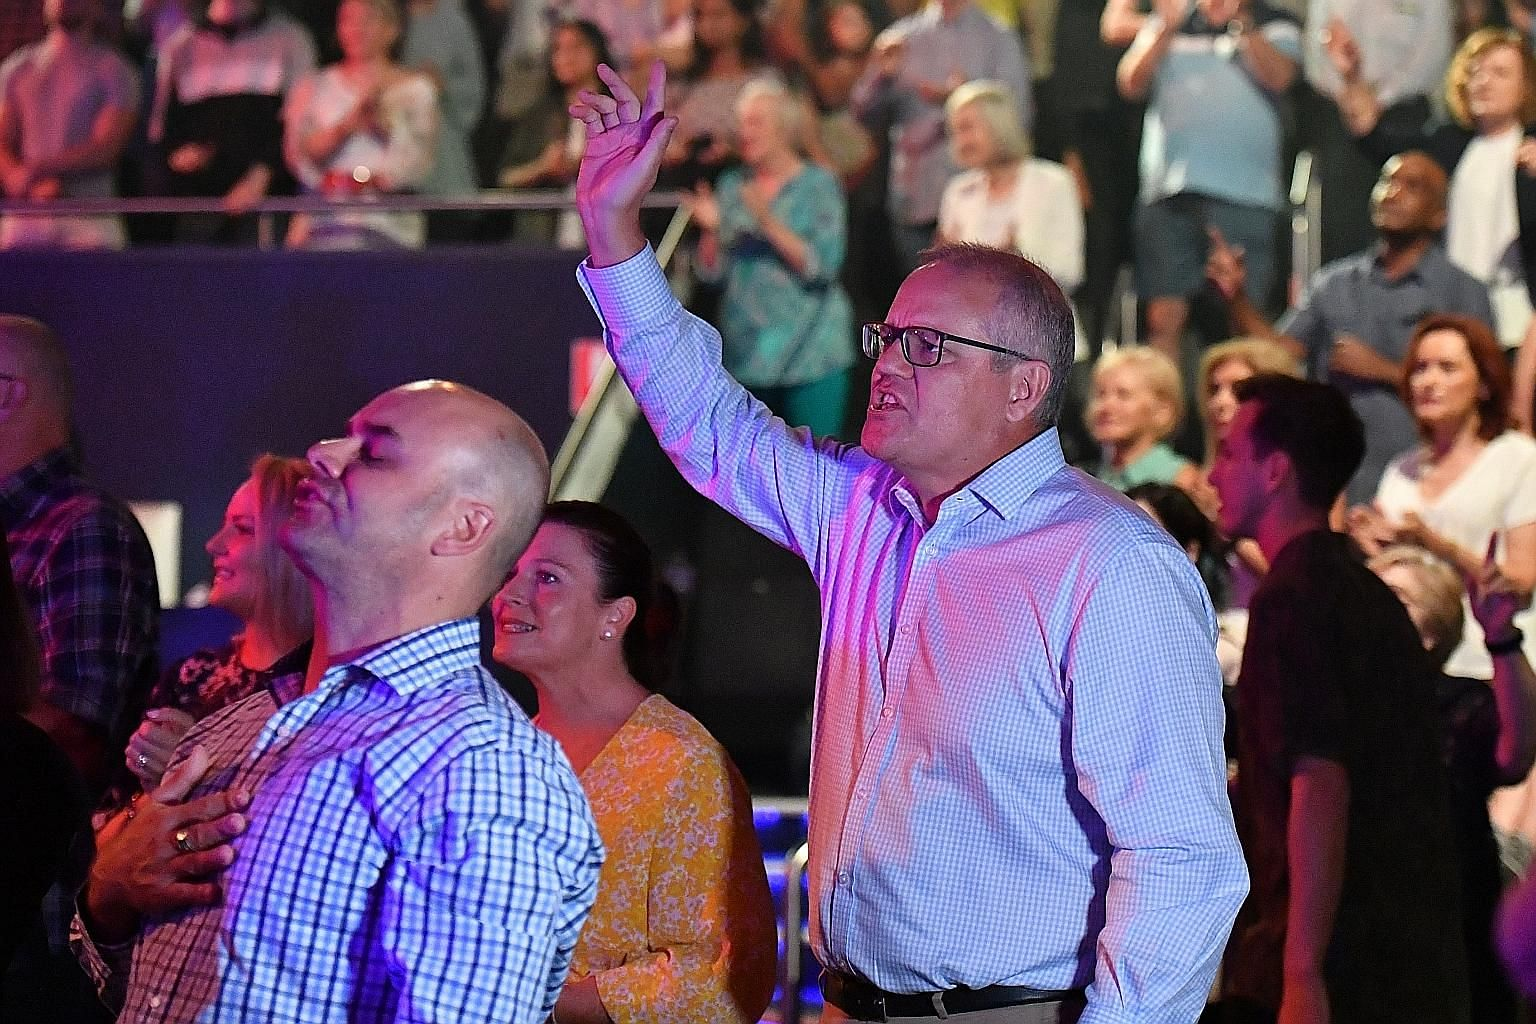 Australian Prime Minister Scott Morrison allowed the media to follow him as he attended an Easter service at Horizon Church. Critics accused him of trying to make political gains from his religious worship, while others said the images helped to demo